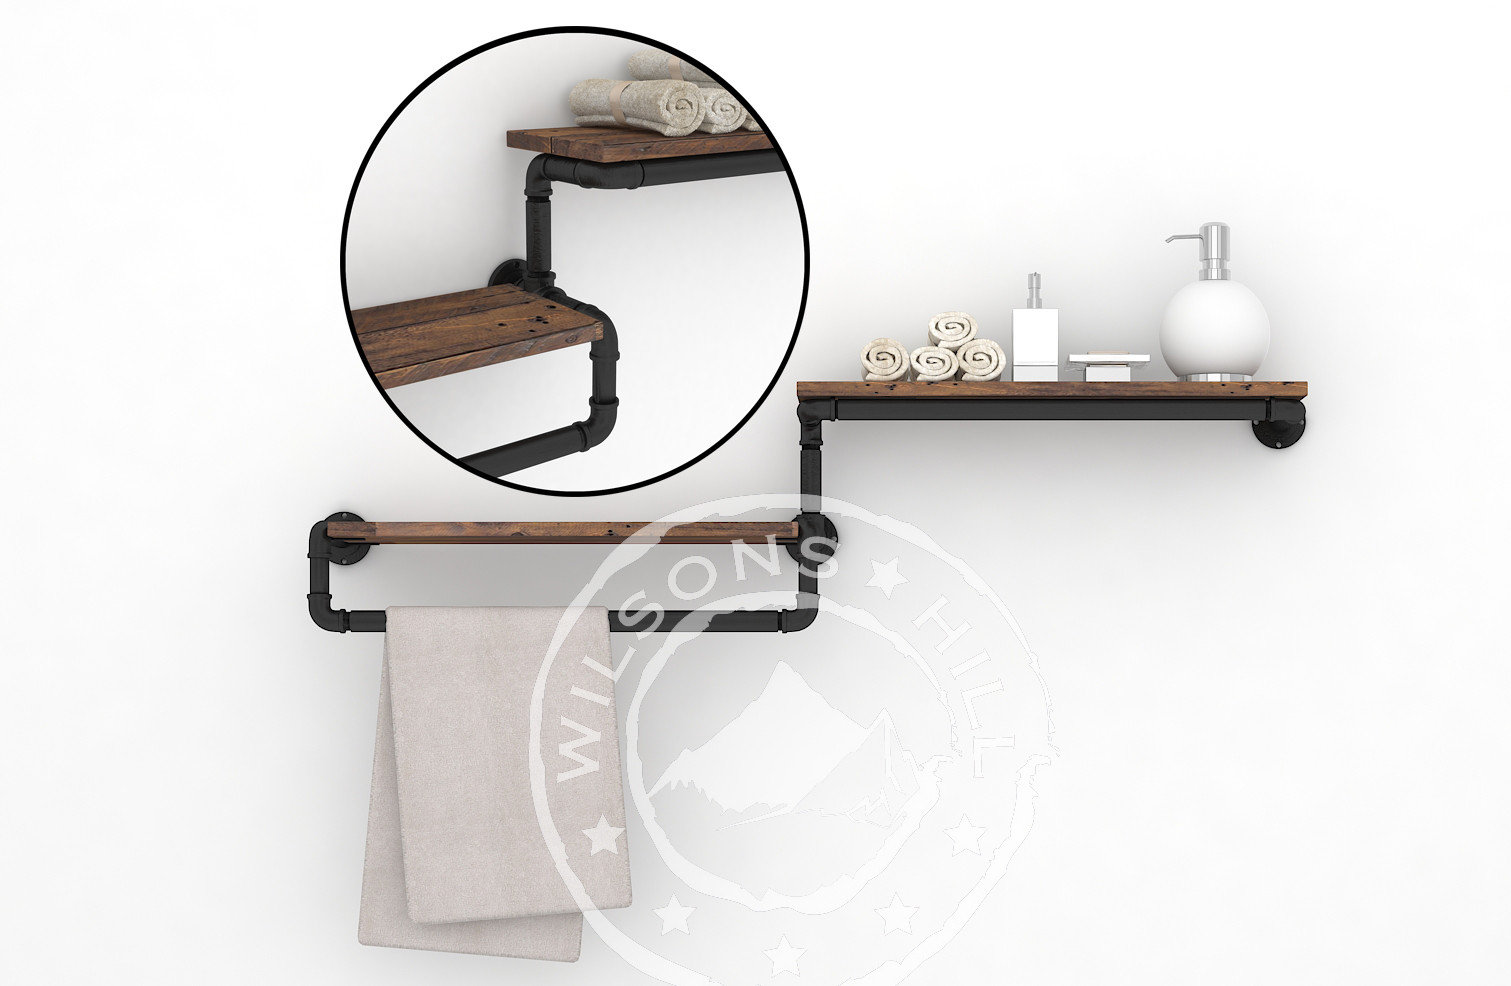 Bourbon (Towel rack)